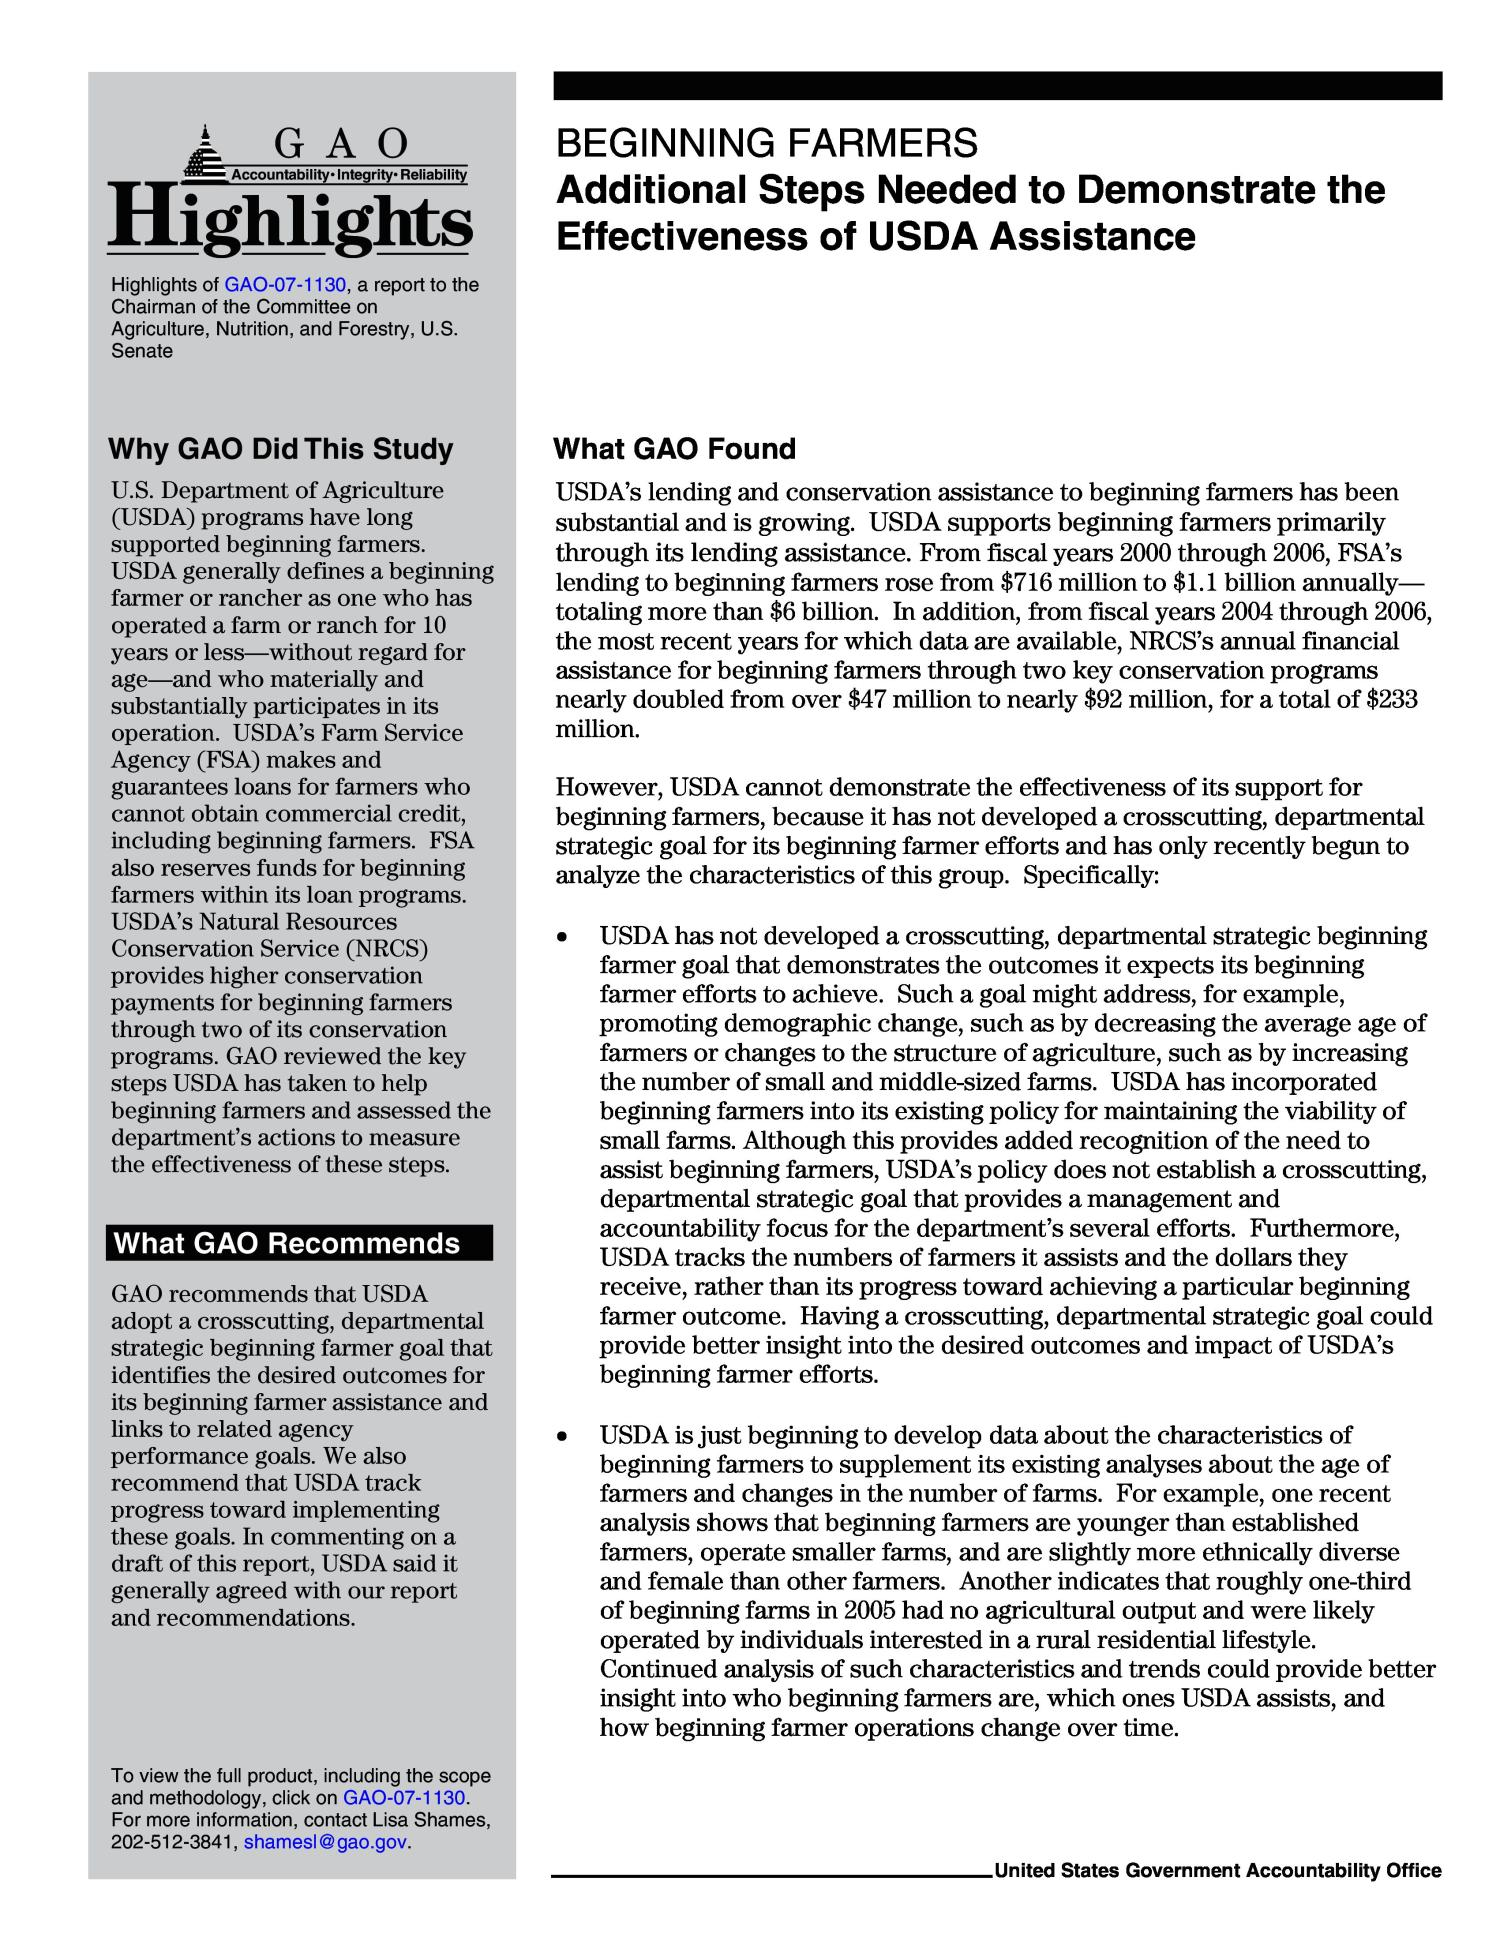 Beginning Farmers: Additional Steps Needed to Demonstrate the Effectiveness of USDA Assistance                                                                                                      [Sequence #]: 2 of 48